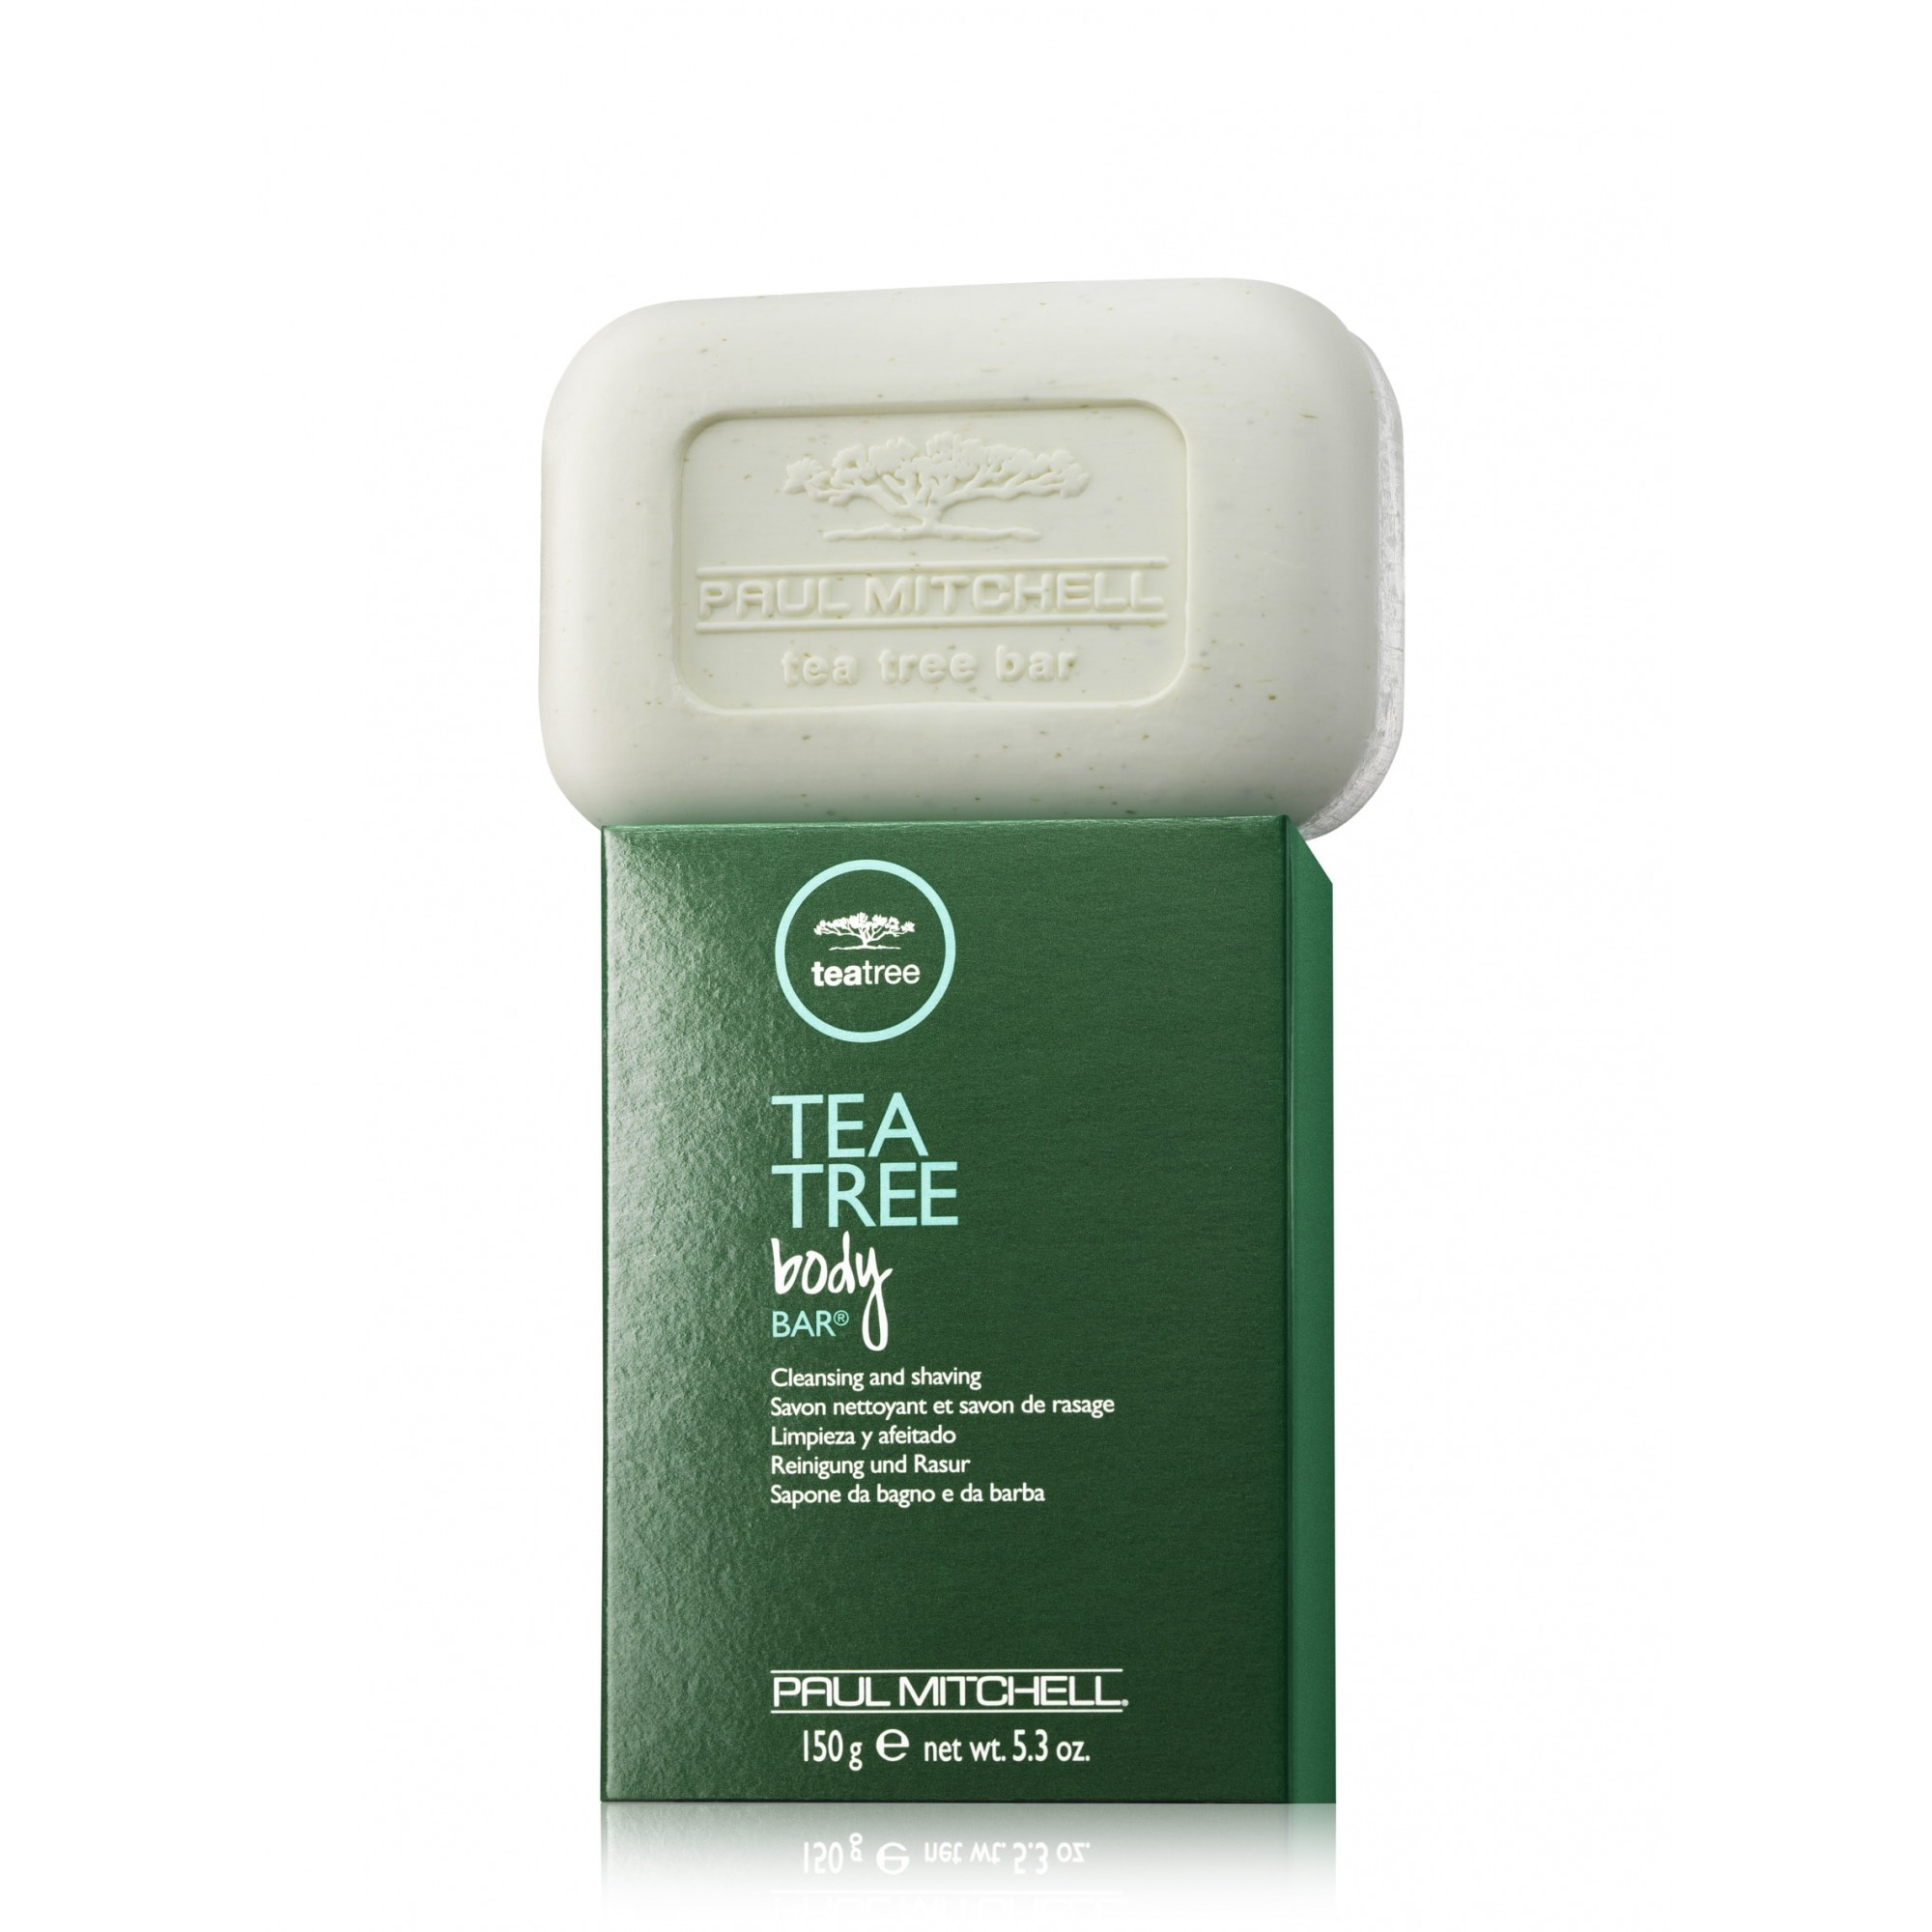 Sabonete Tea Tree Body Bar 2em1 | PAUL MITCHELL